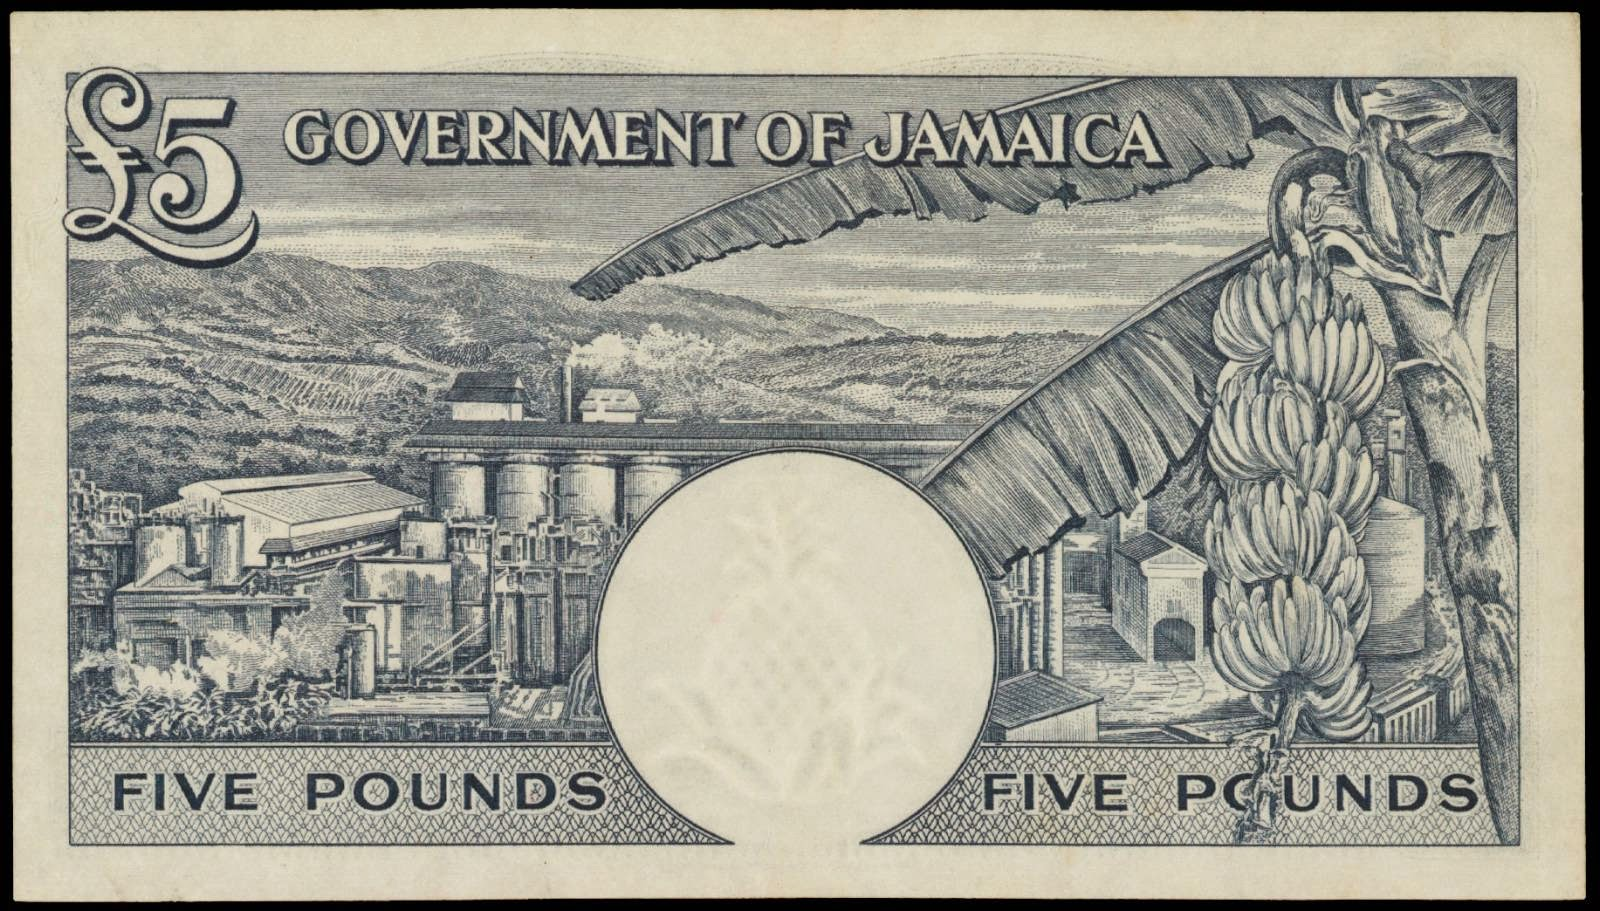 1960 Five Pounds Bank Note from Jamaica